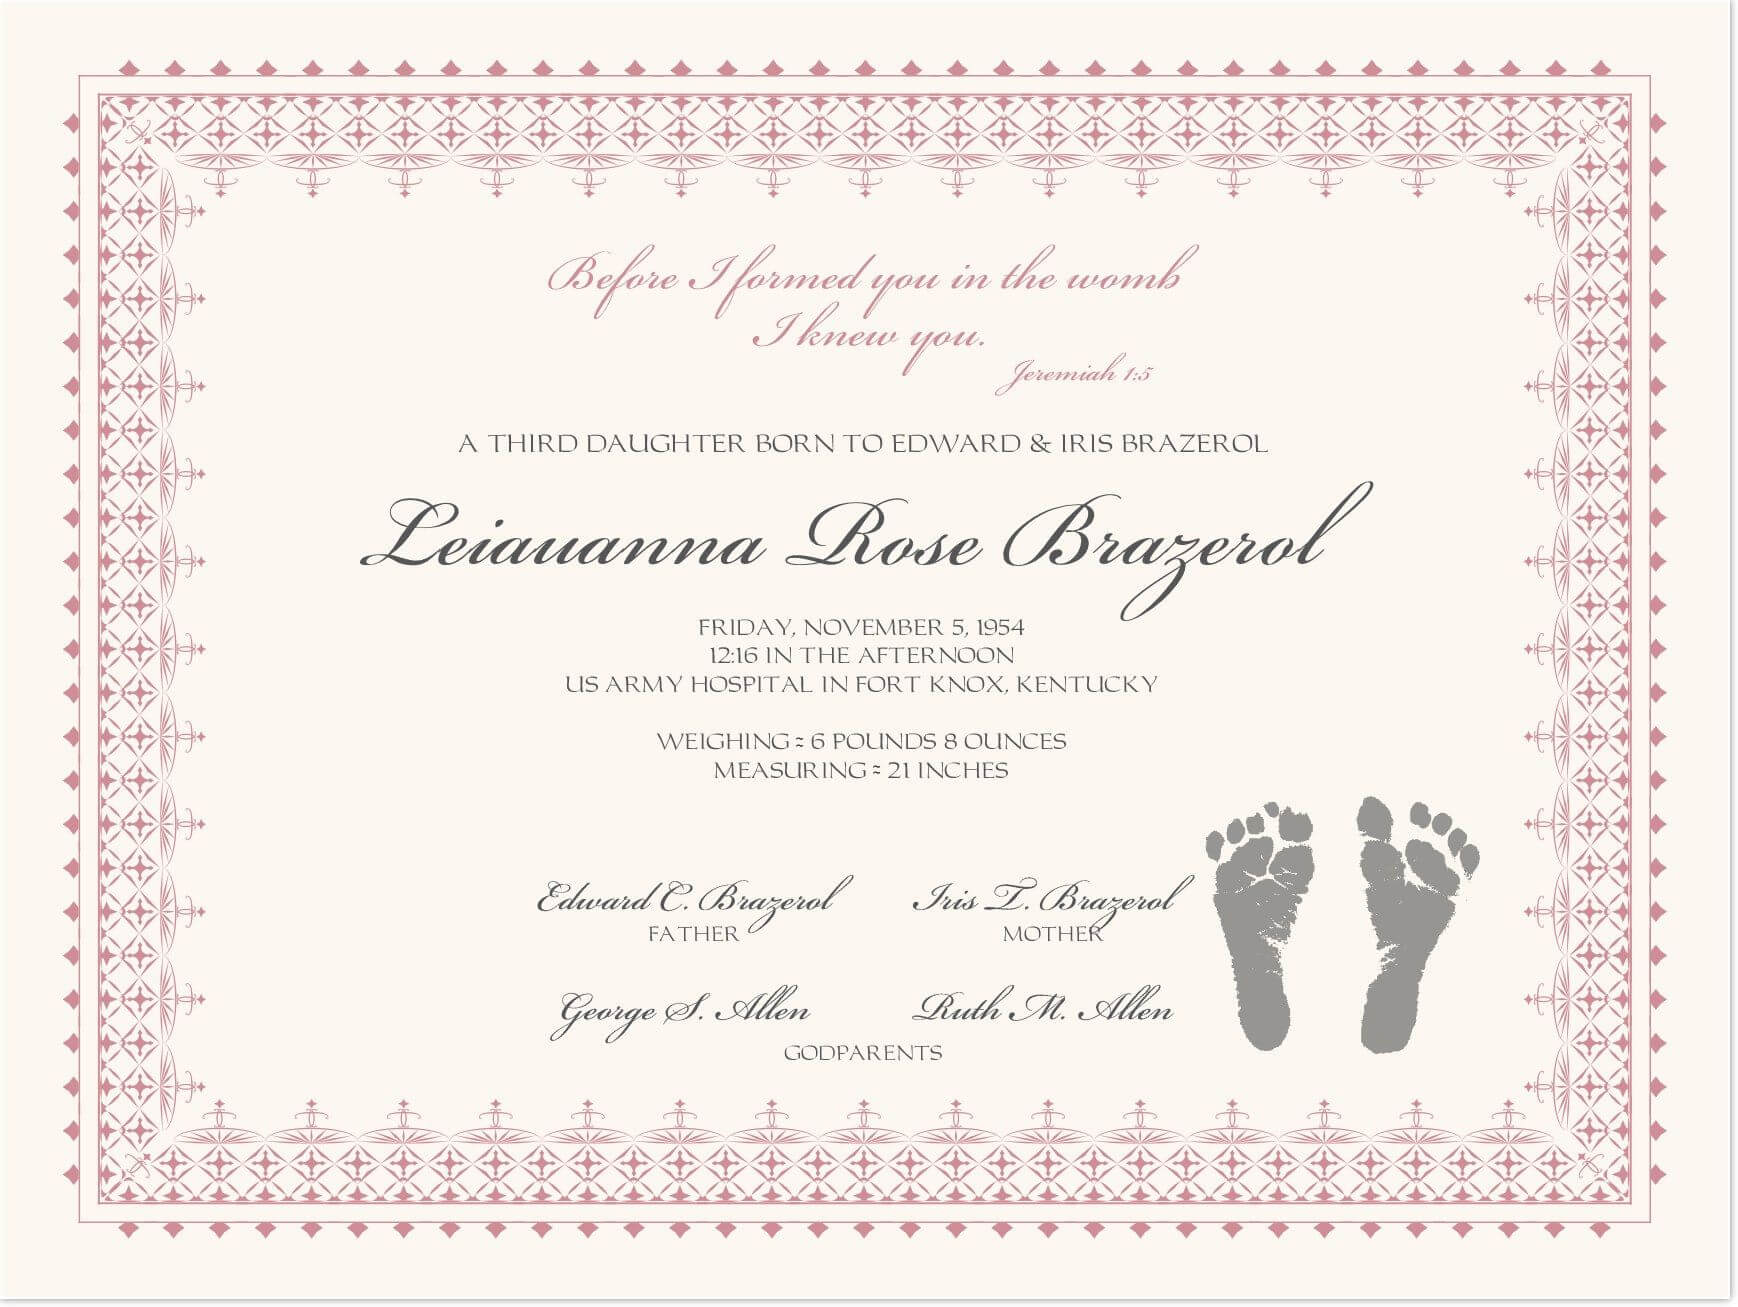 002 Baby Dedication Certificate Template Ideas Wonderful Regarding Baby Christening Certificate Template